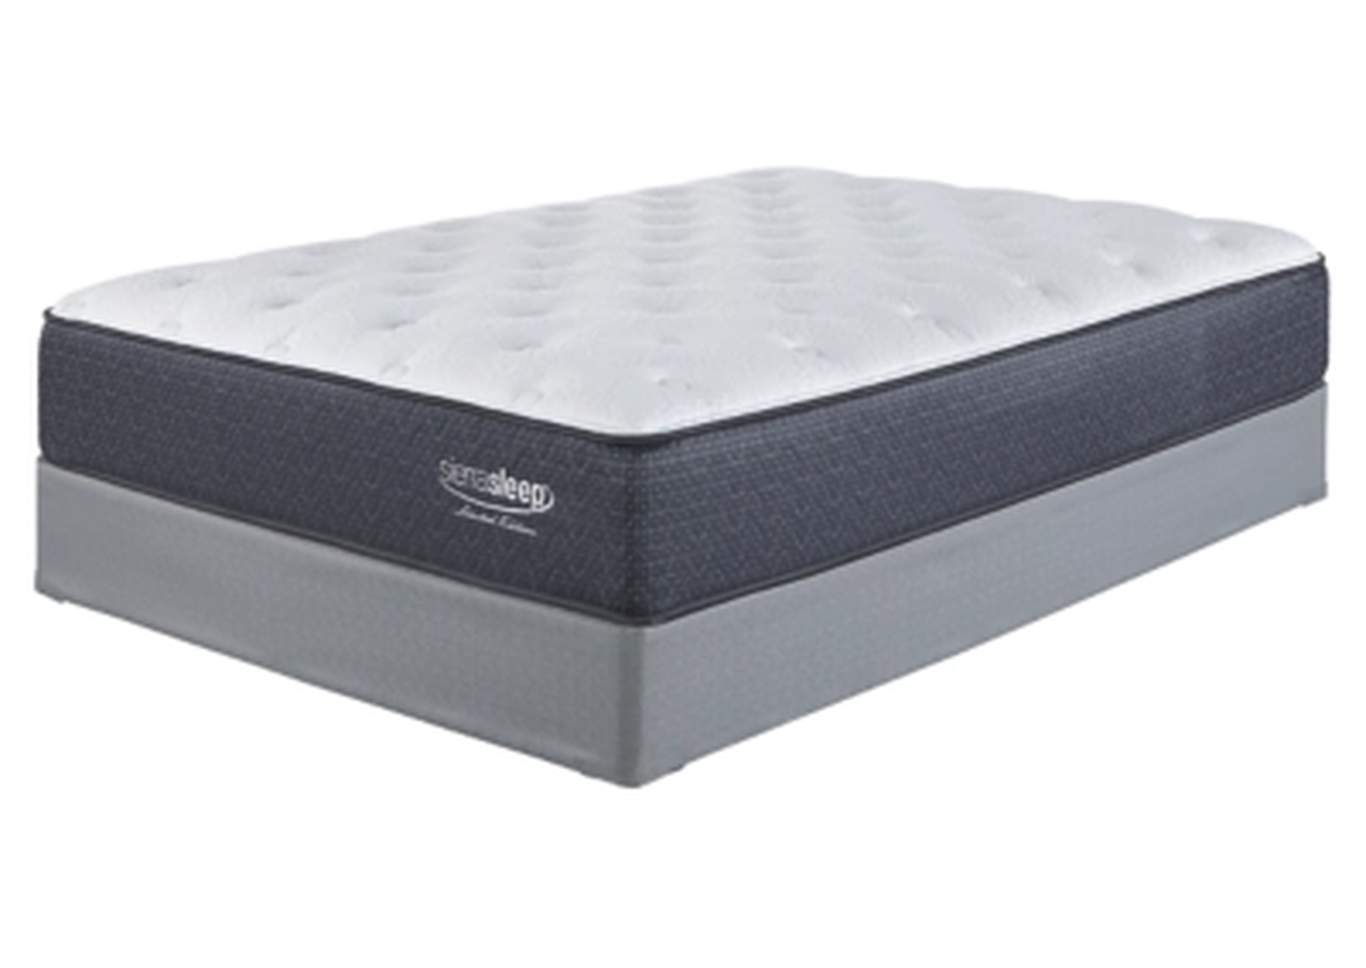 Oak Furniture Liquidators Limited Edition Plush White King Mattress